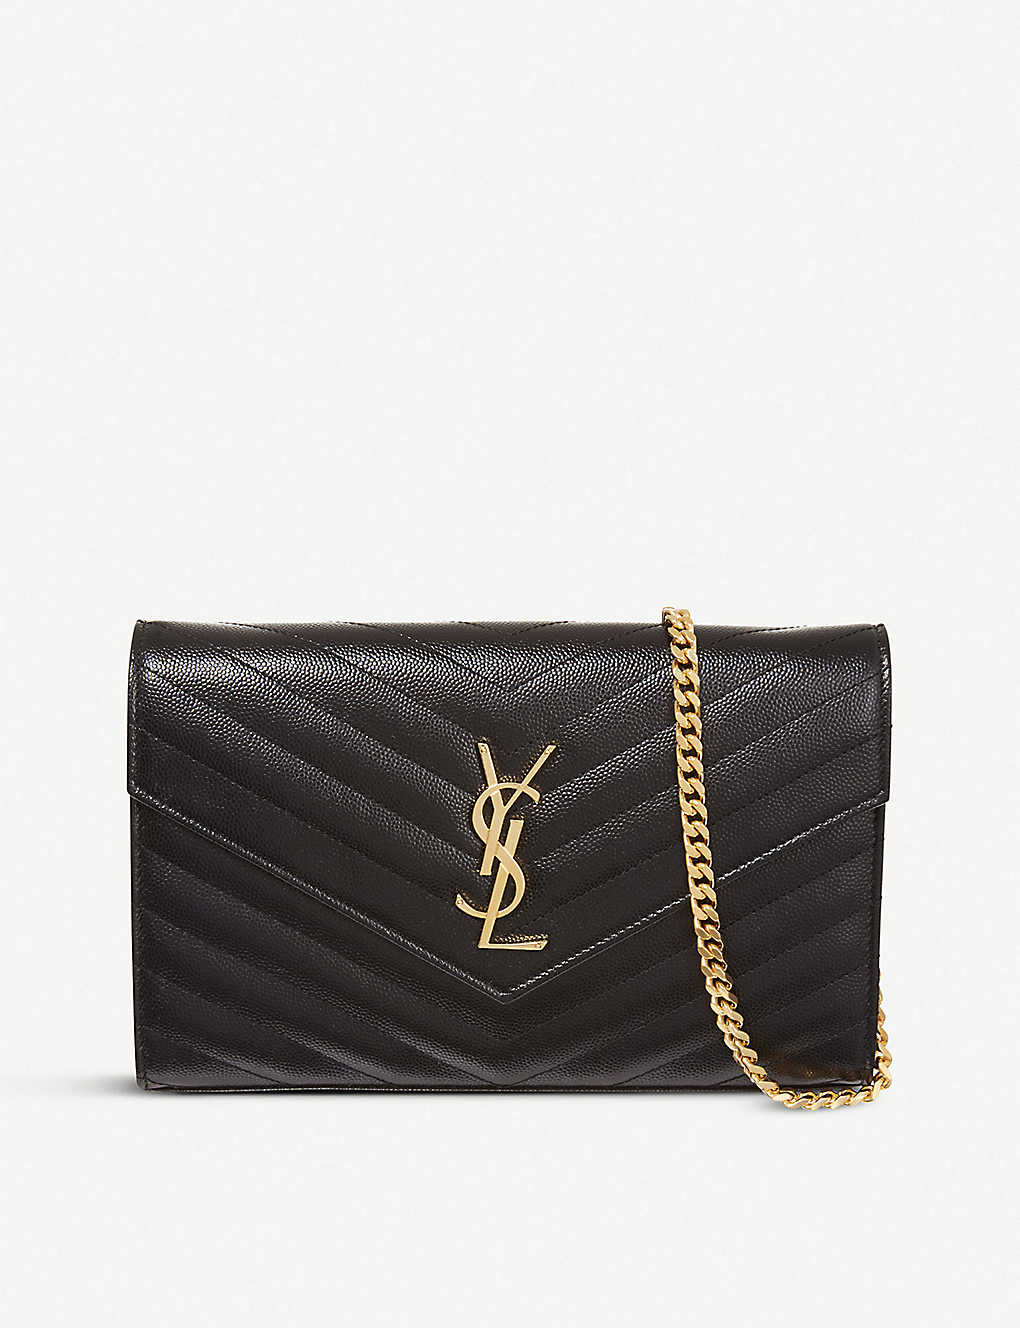 ysl shoulder bag